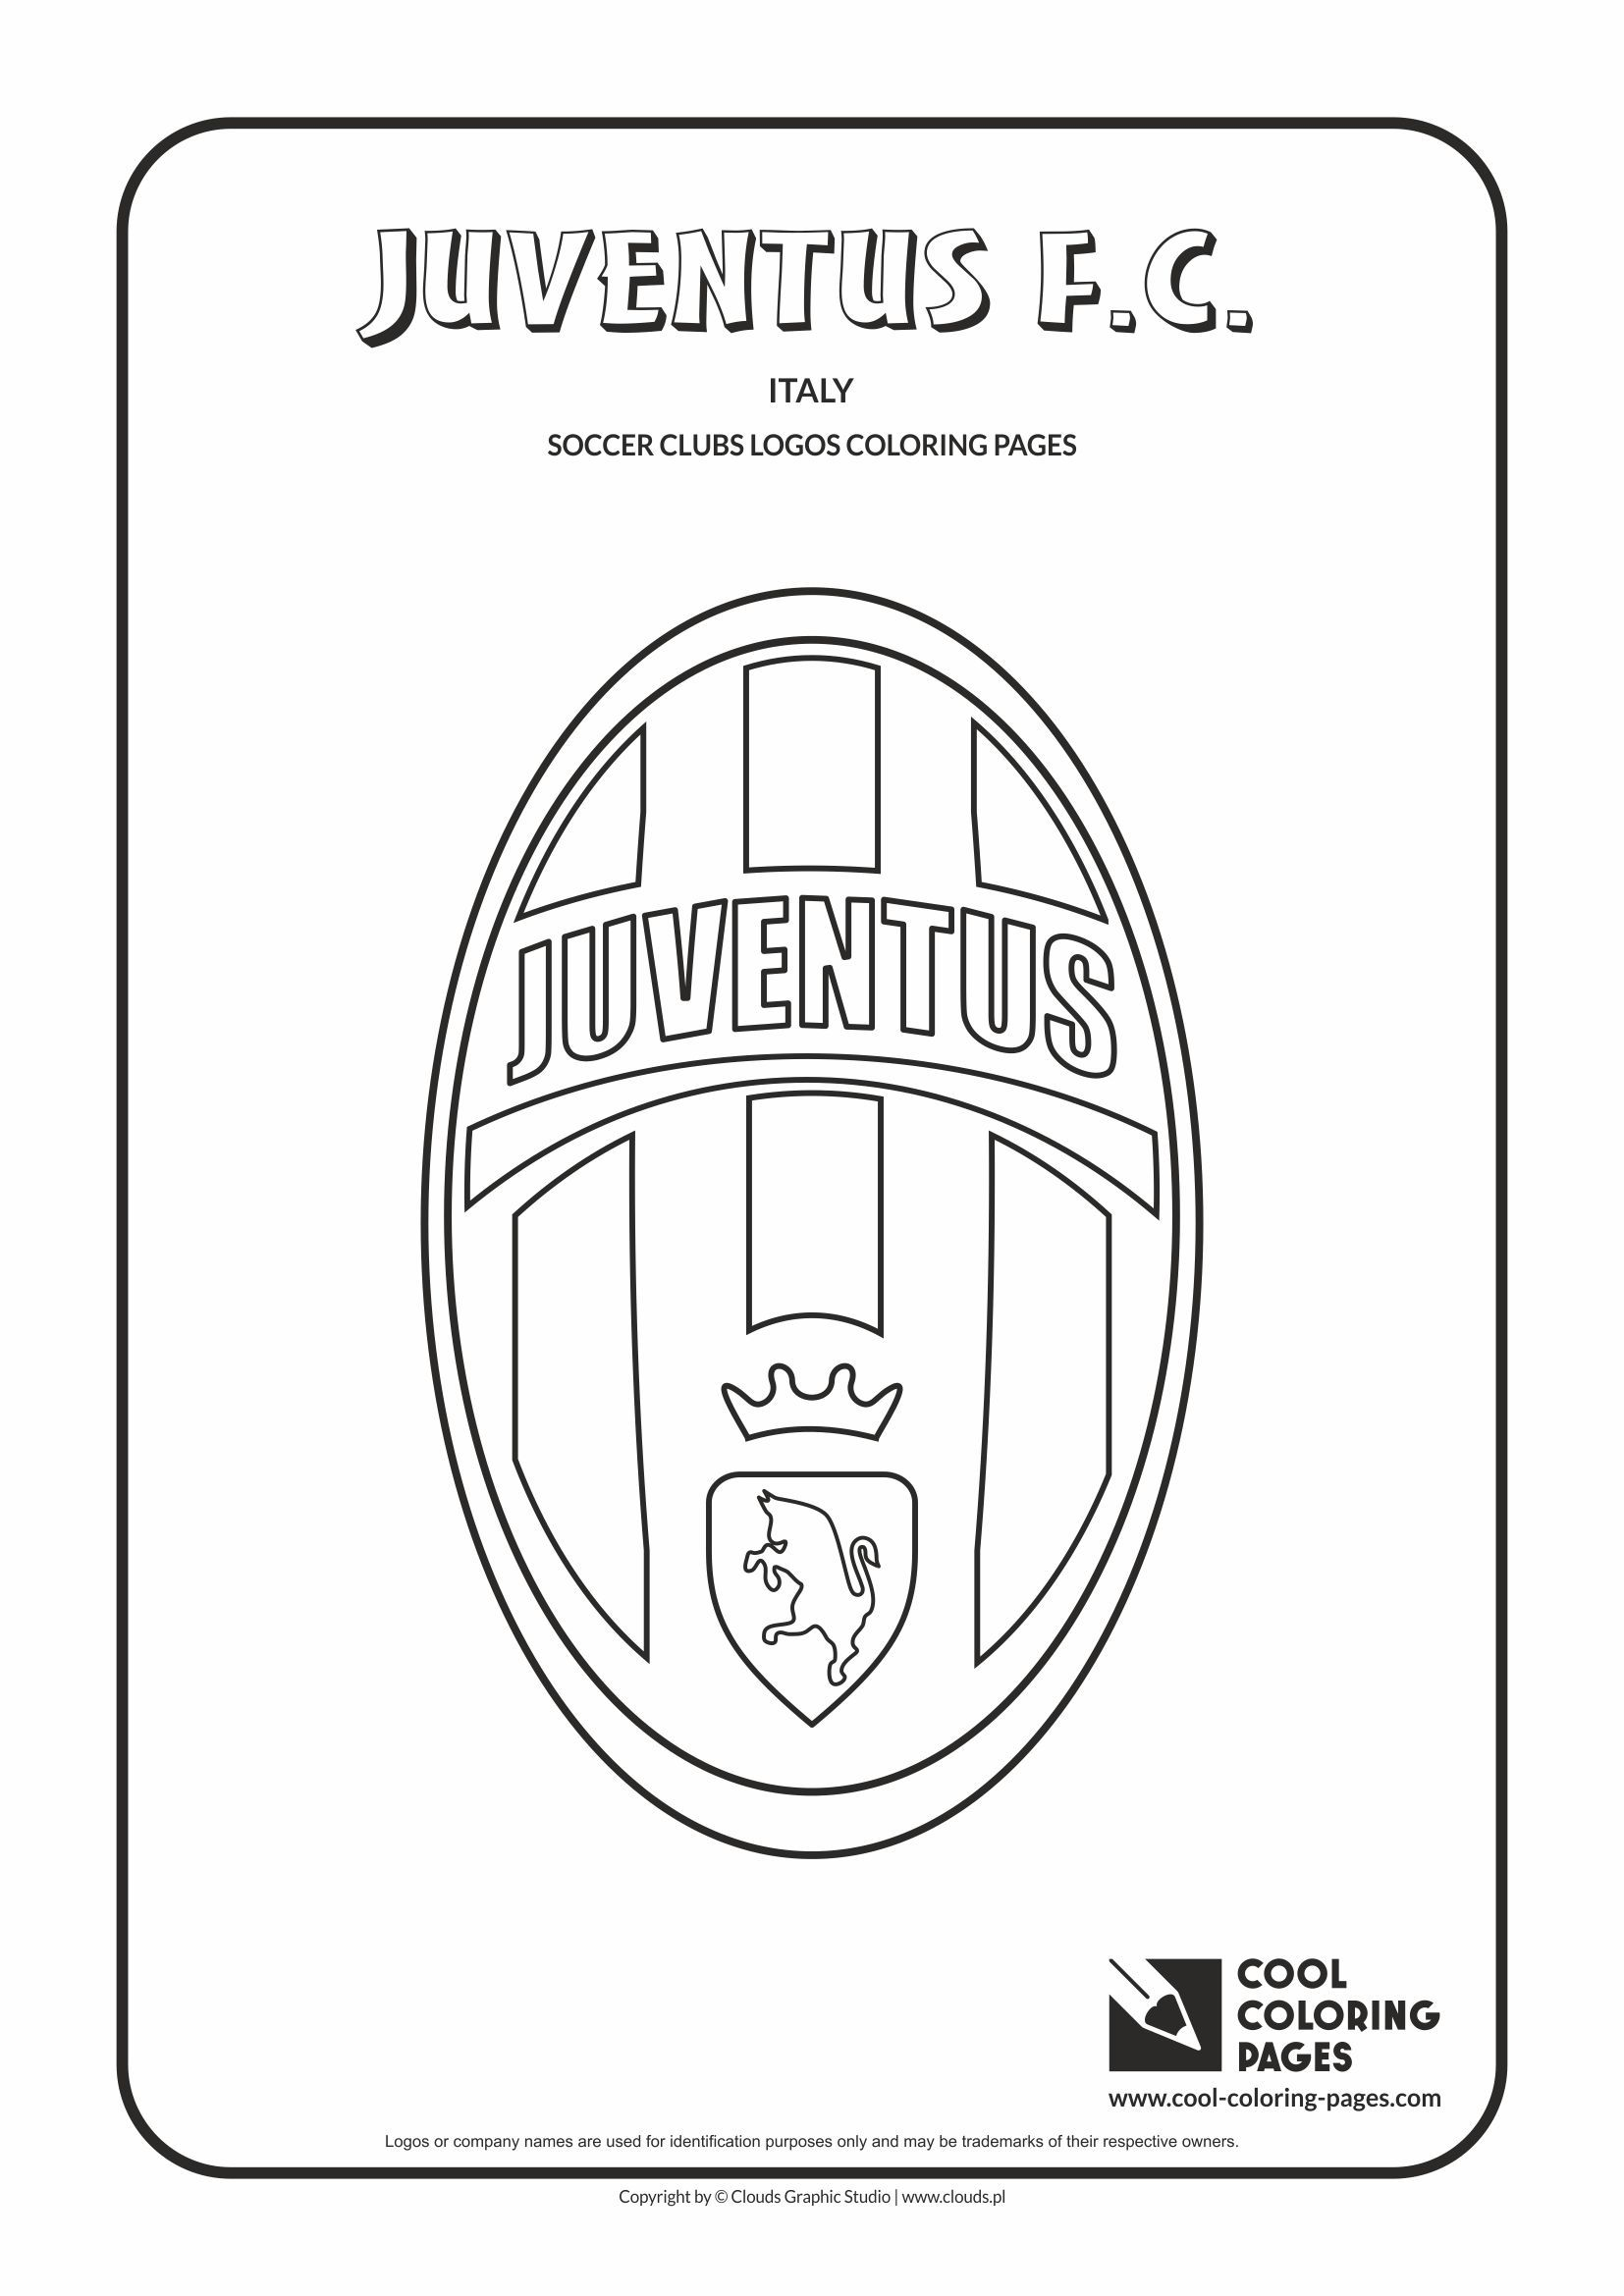 Cool Coloring Pages Soccer Clubs Logos Juventus F C Logo